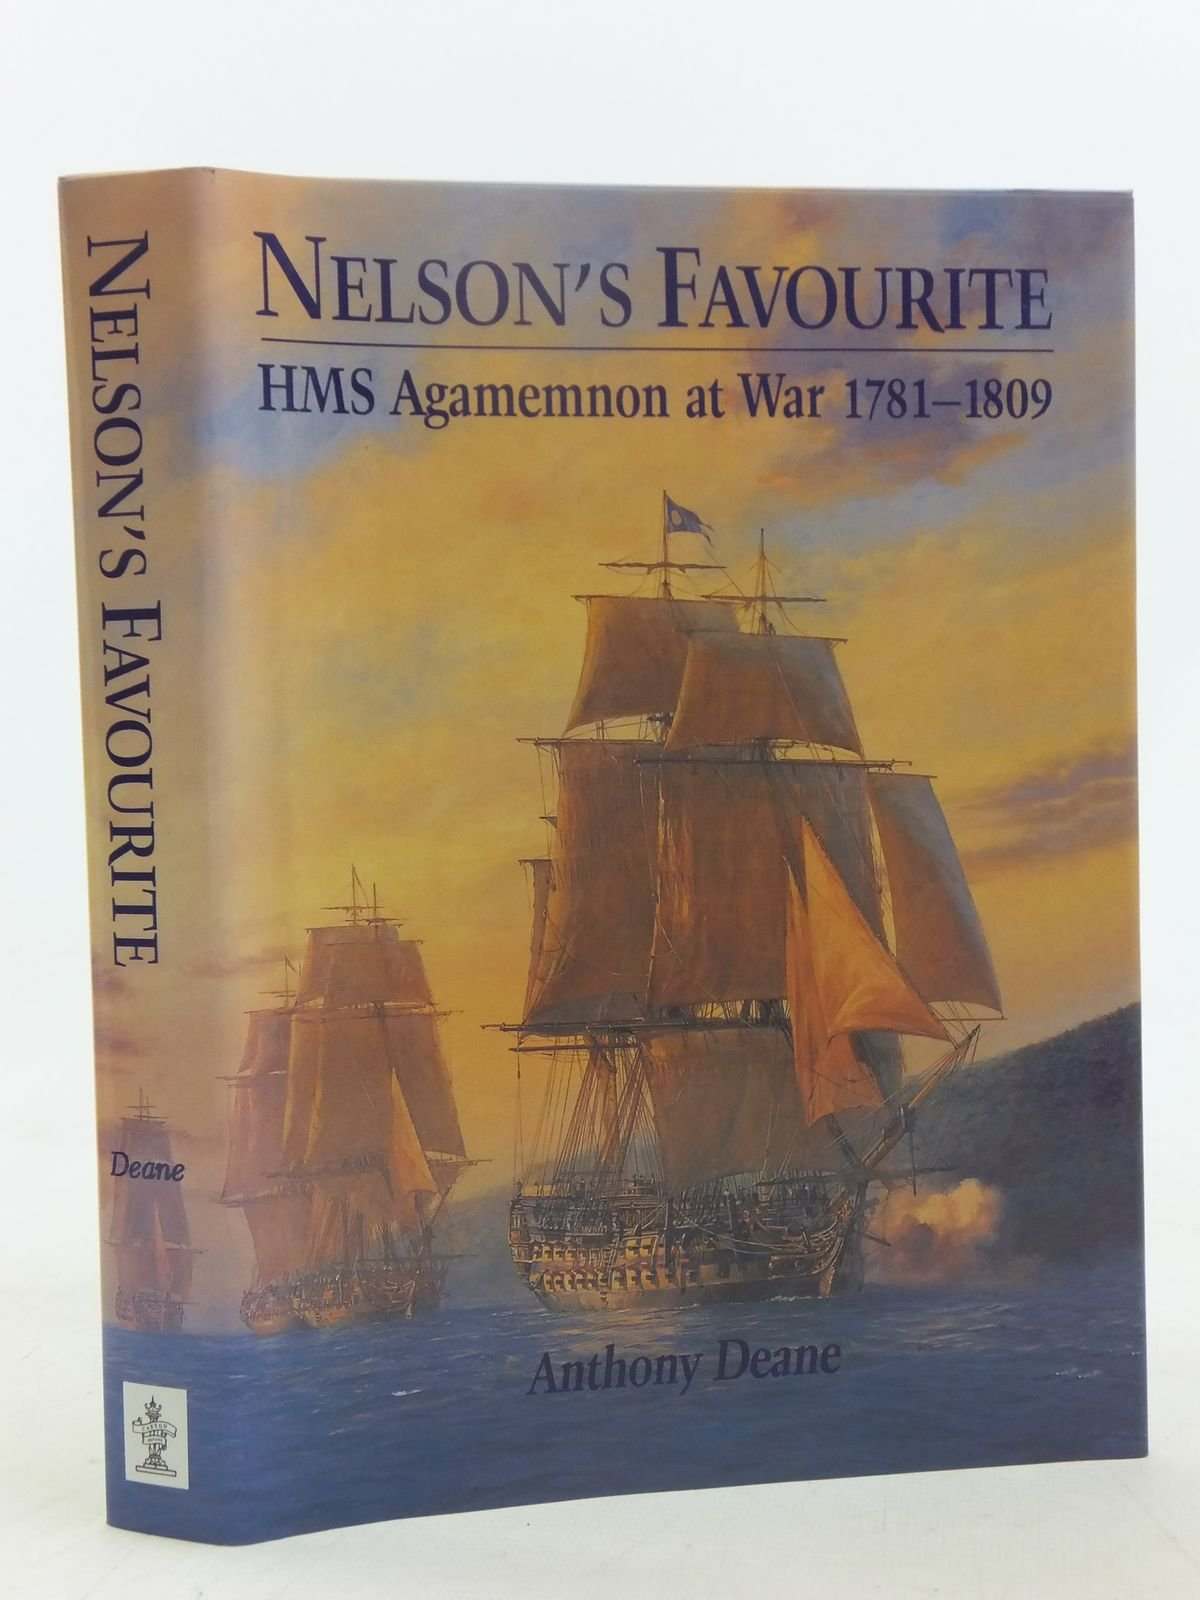 Nelson's Favourite: HMS Agamemnon at War 1781-1809